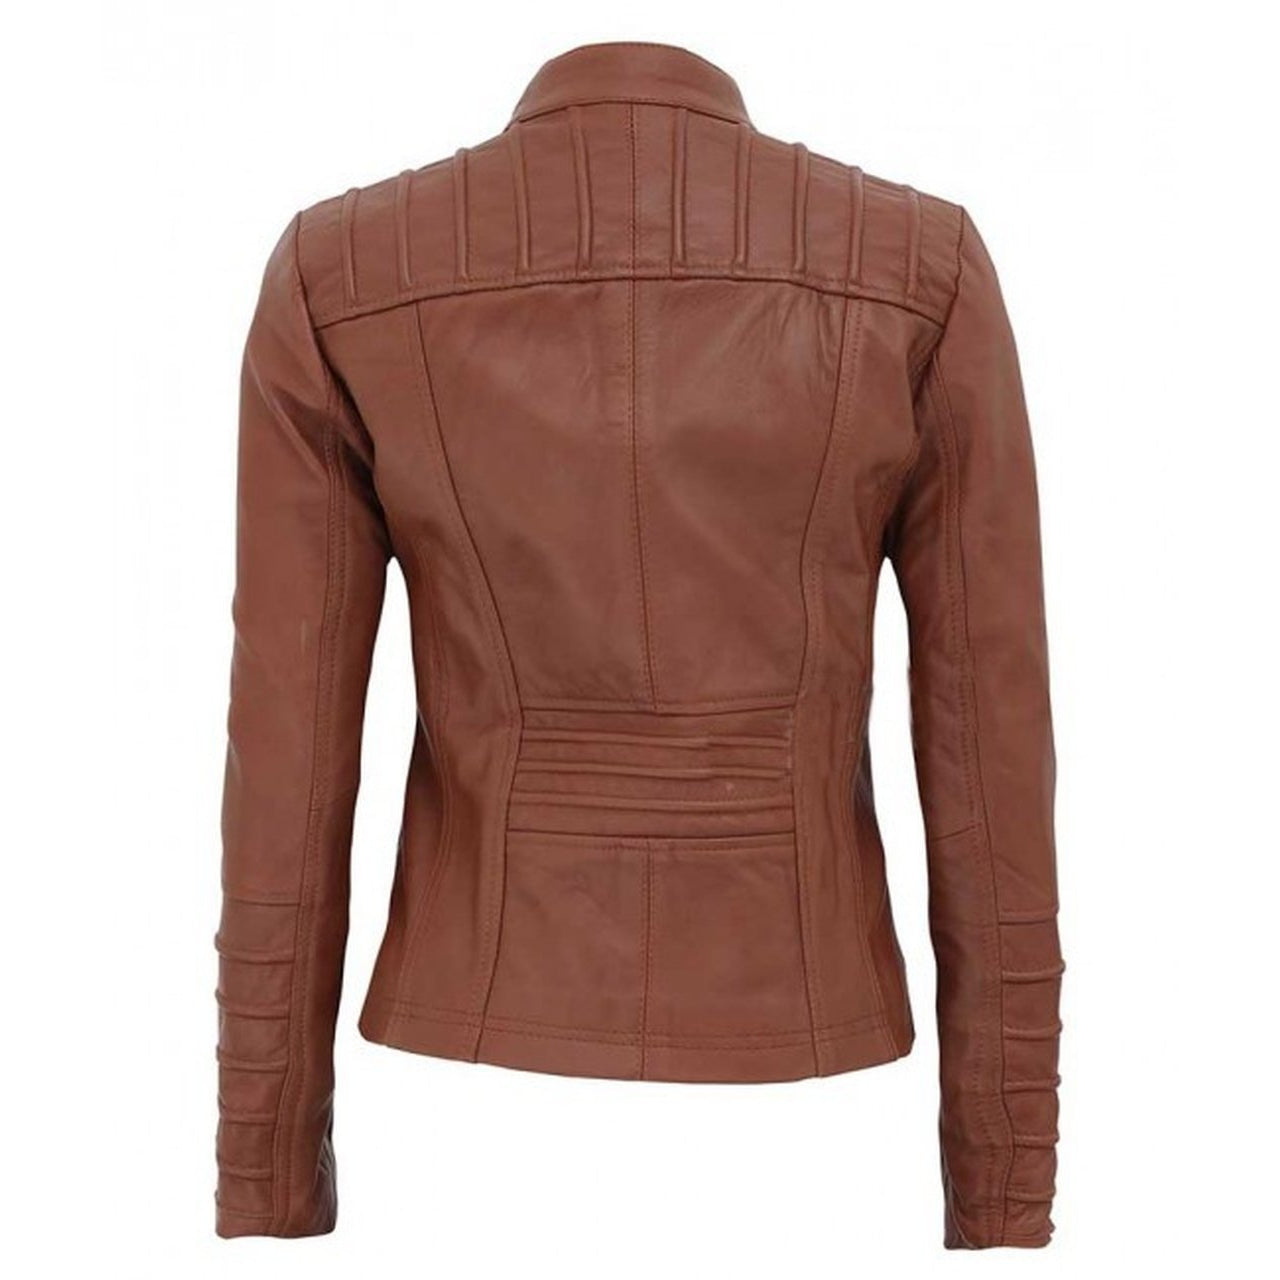 Women Tan Quilted Leather Biker Jacket - Leather Jacket